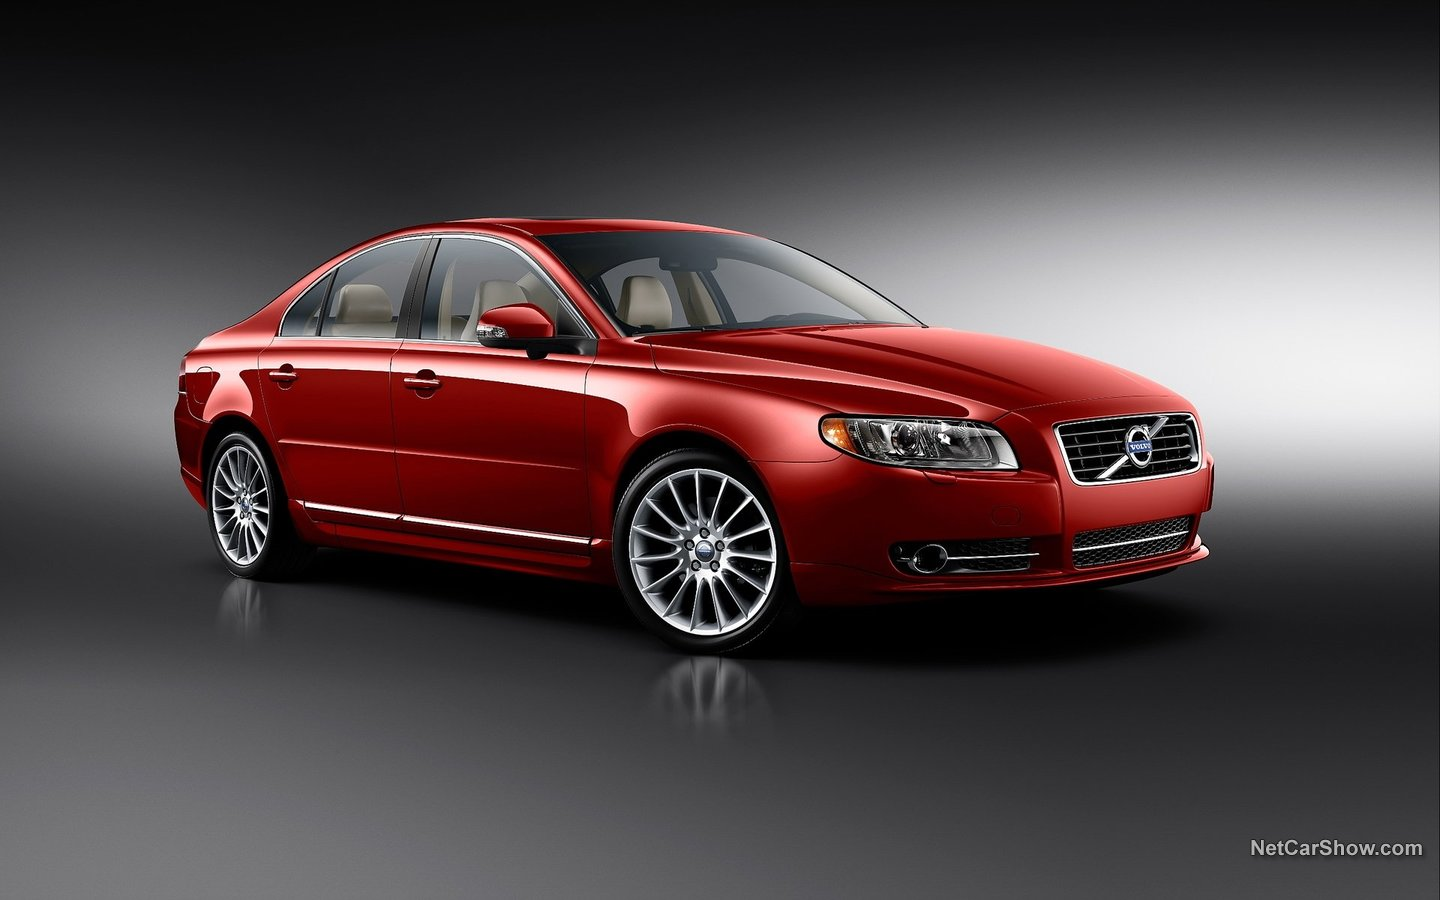 Volvo S80 2010 a7c073a8